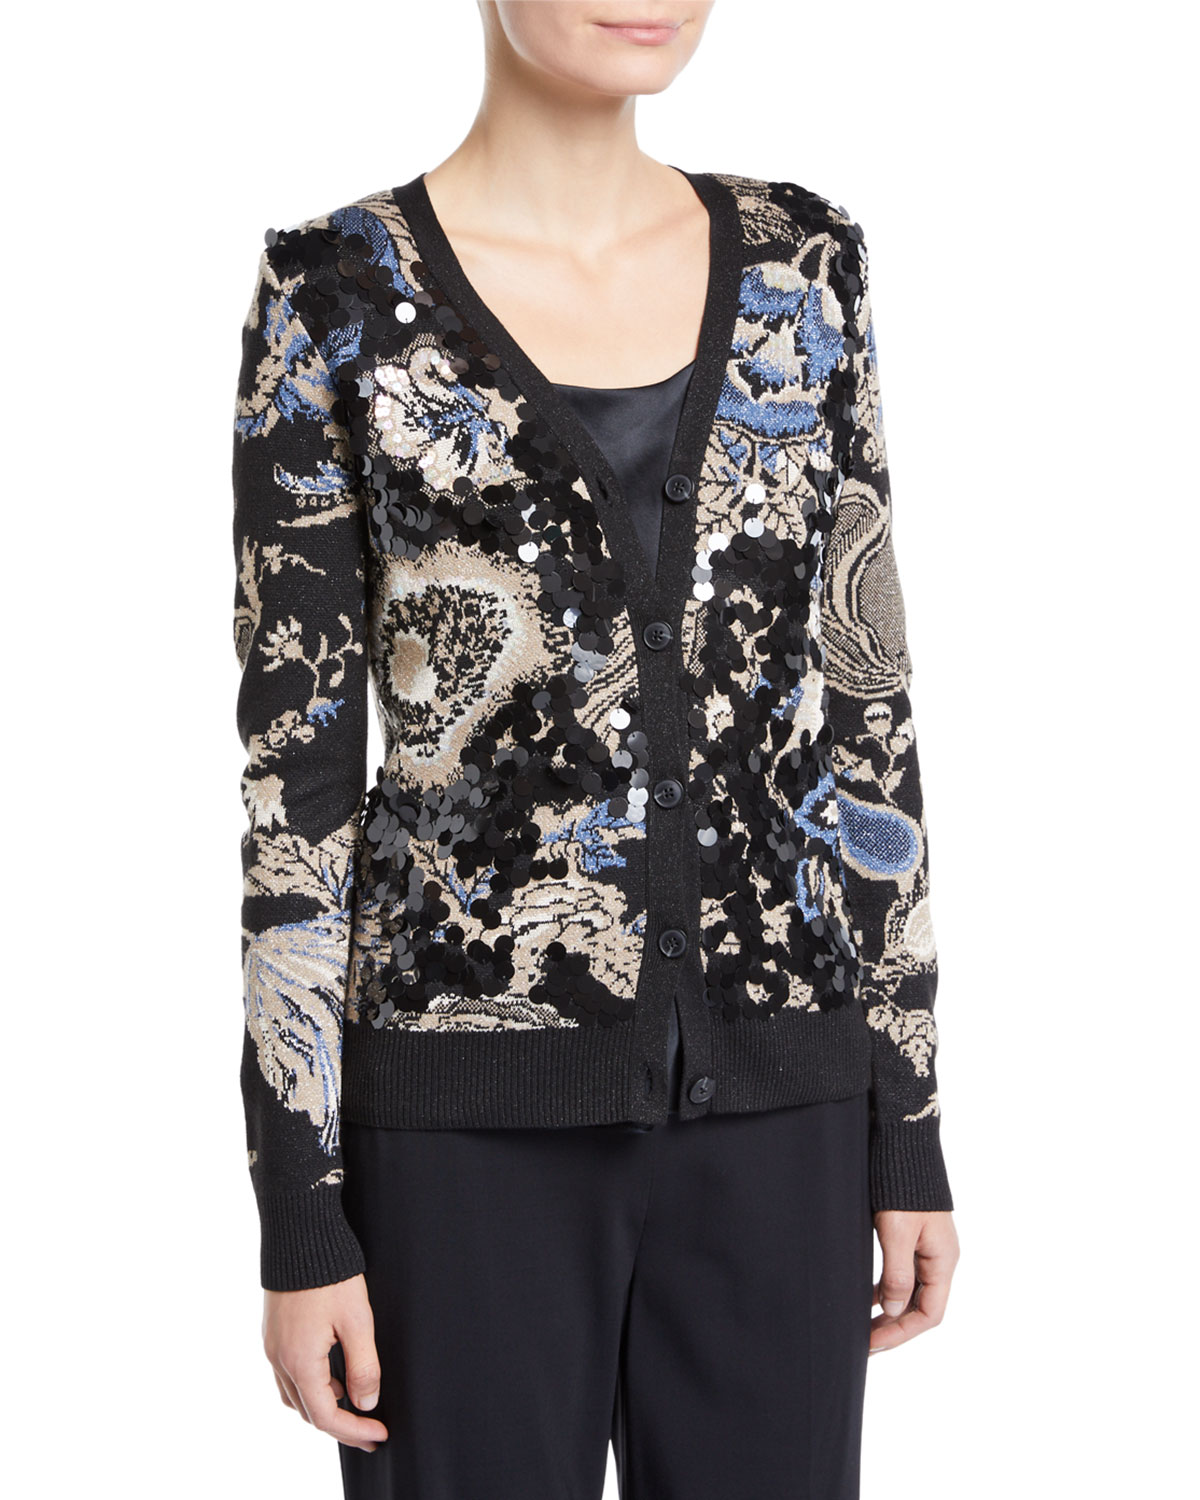 Giselle Sequined Print Cardigan